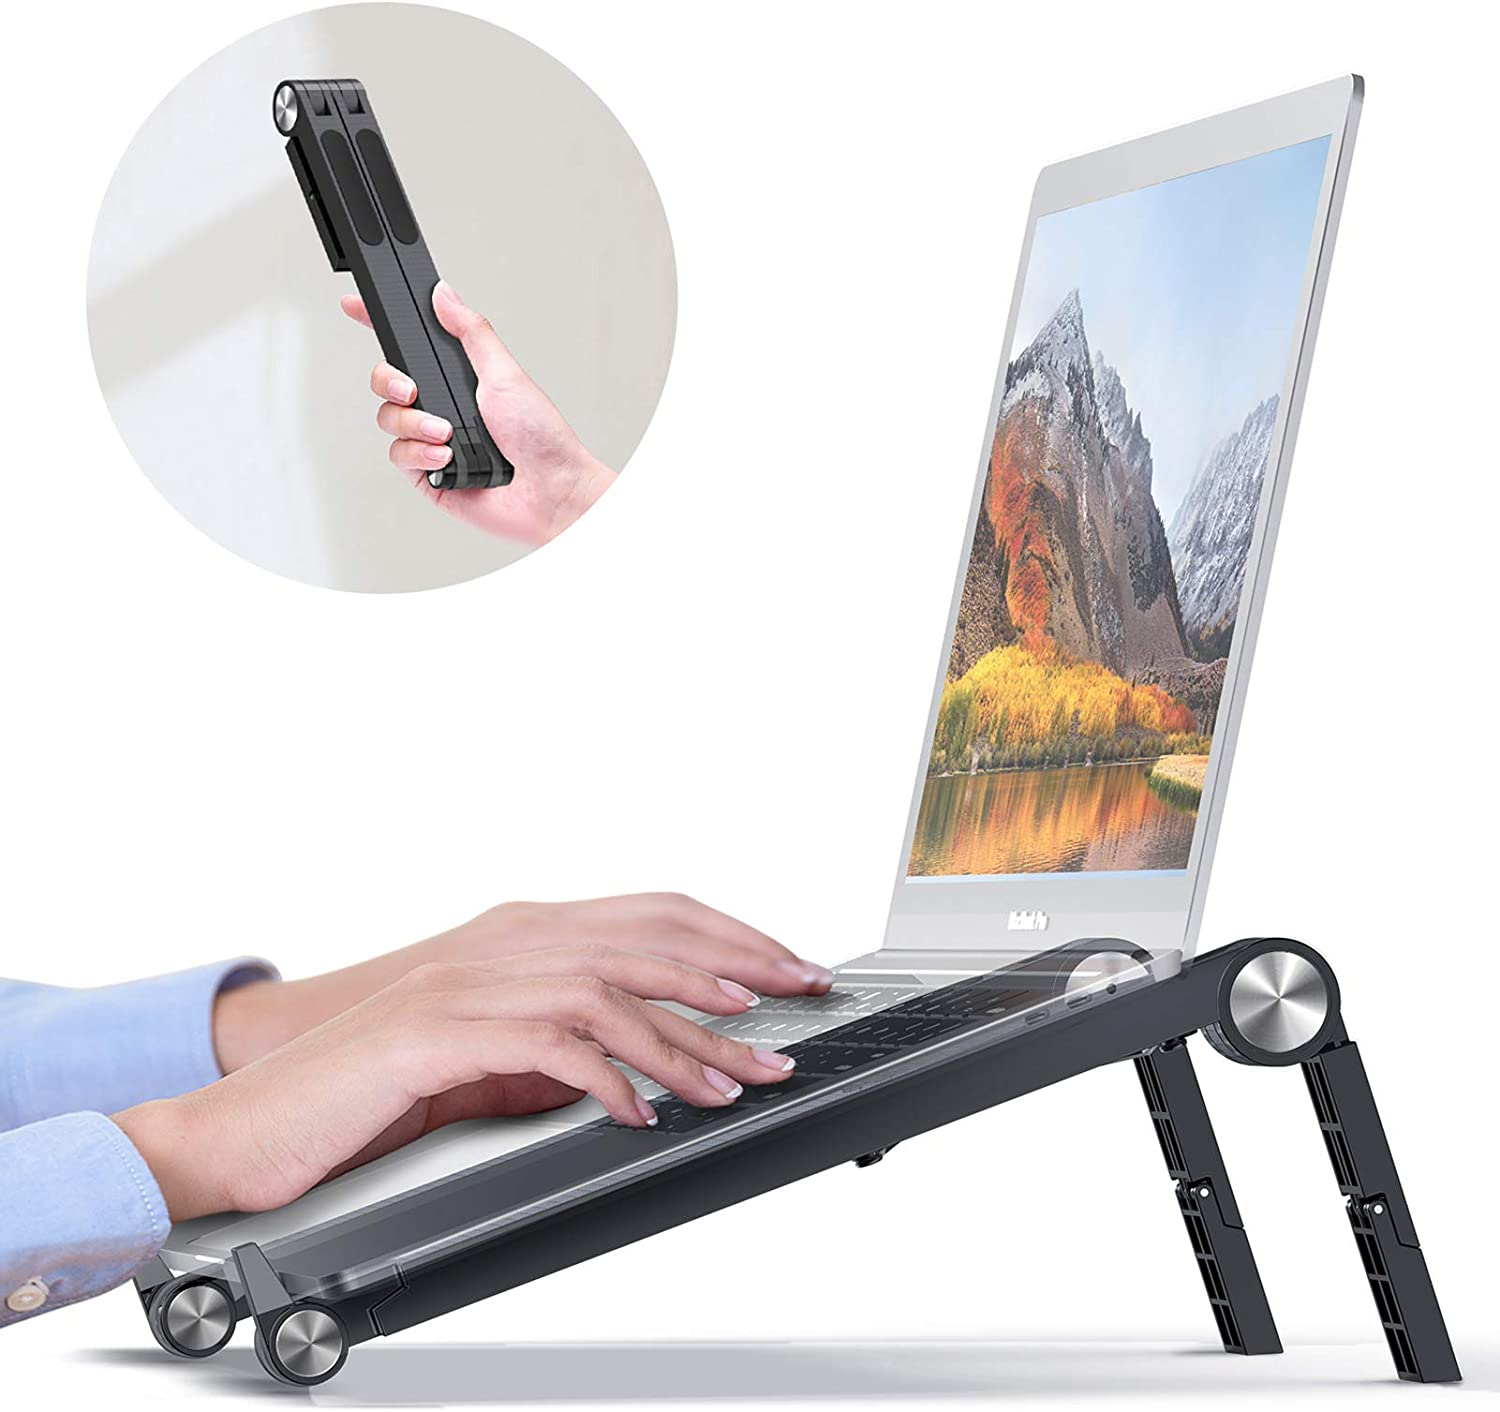 Portable Laptop Stand Foldable, DesertWest Ergonomic Laptop Stand for Desk Adjustable Height Ventilated [Super Lightweight] Laptop Riser for MacBook Air Pro HP Lenovo XPS Asus 13 14 15 16 Inch, 7.2 OZ